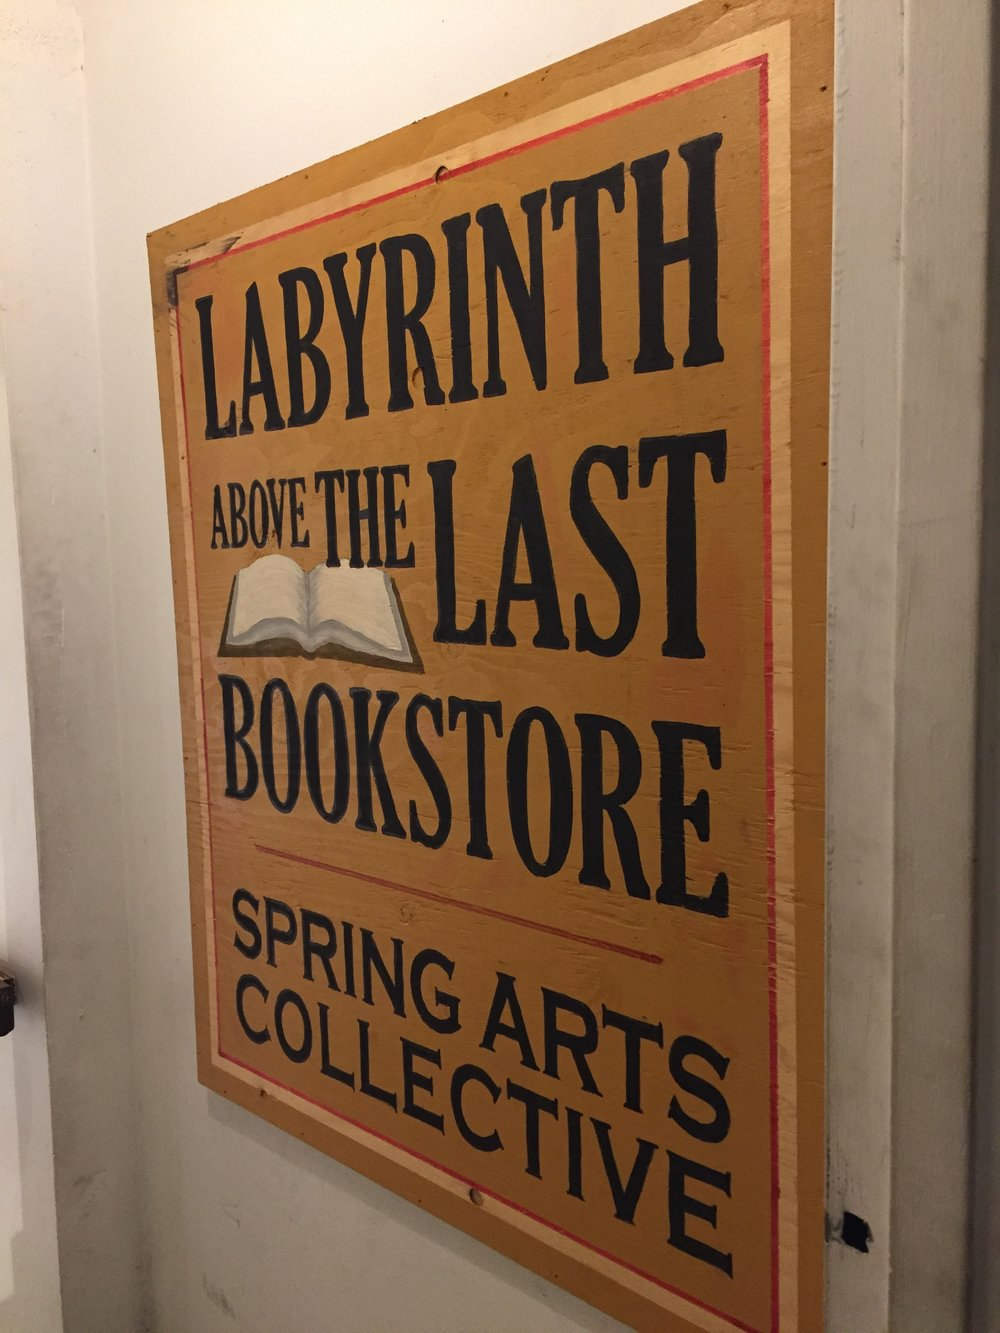 """[image description: A yellow sign on the wall with black text that reads, """"Labyrinth above The Last Bookstore."""" Then below, the words, """"Spring Arts Collective,"""" referring to the artist retail spaces the bookstore rents out to local artists.]"""